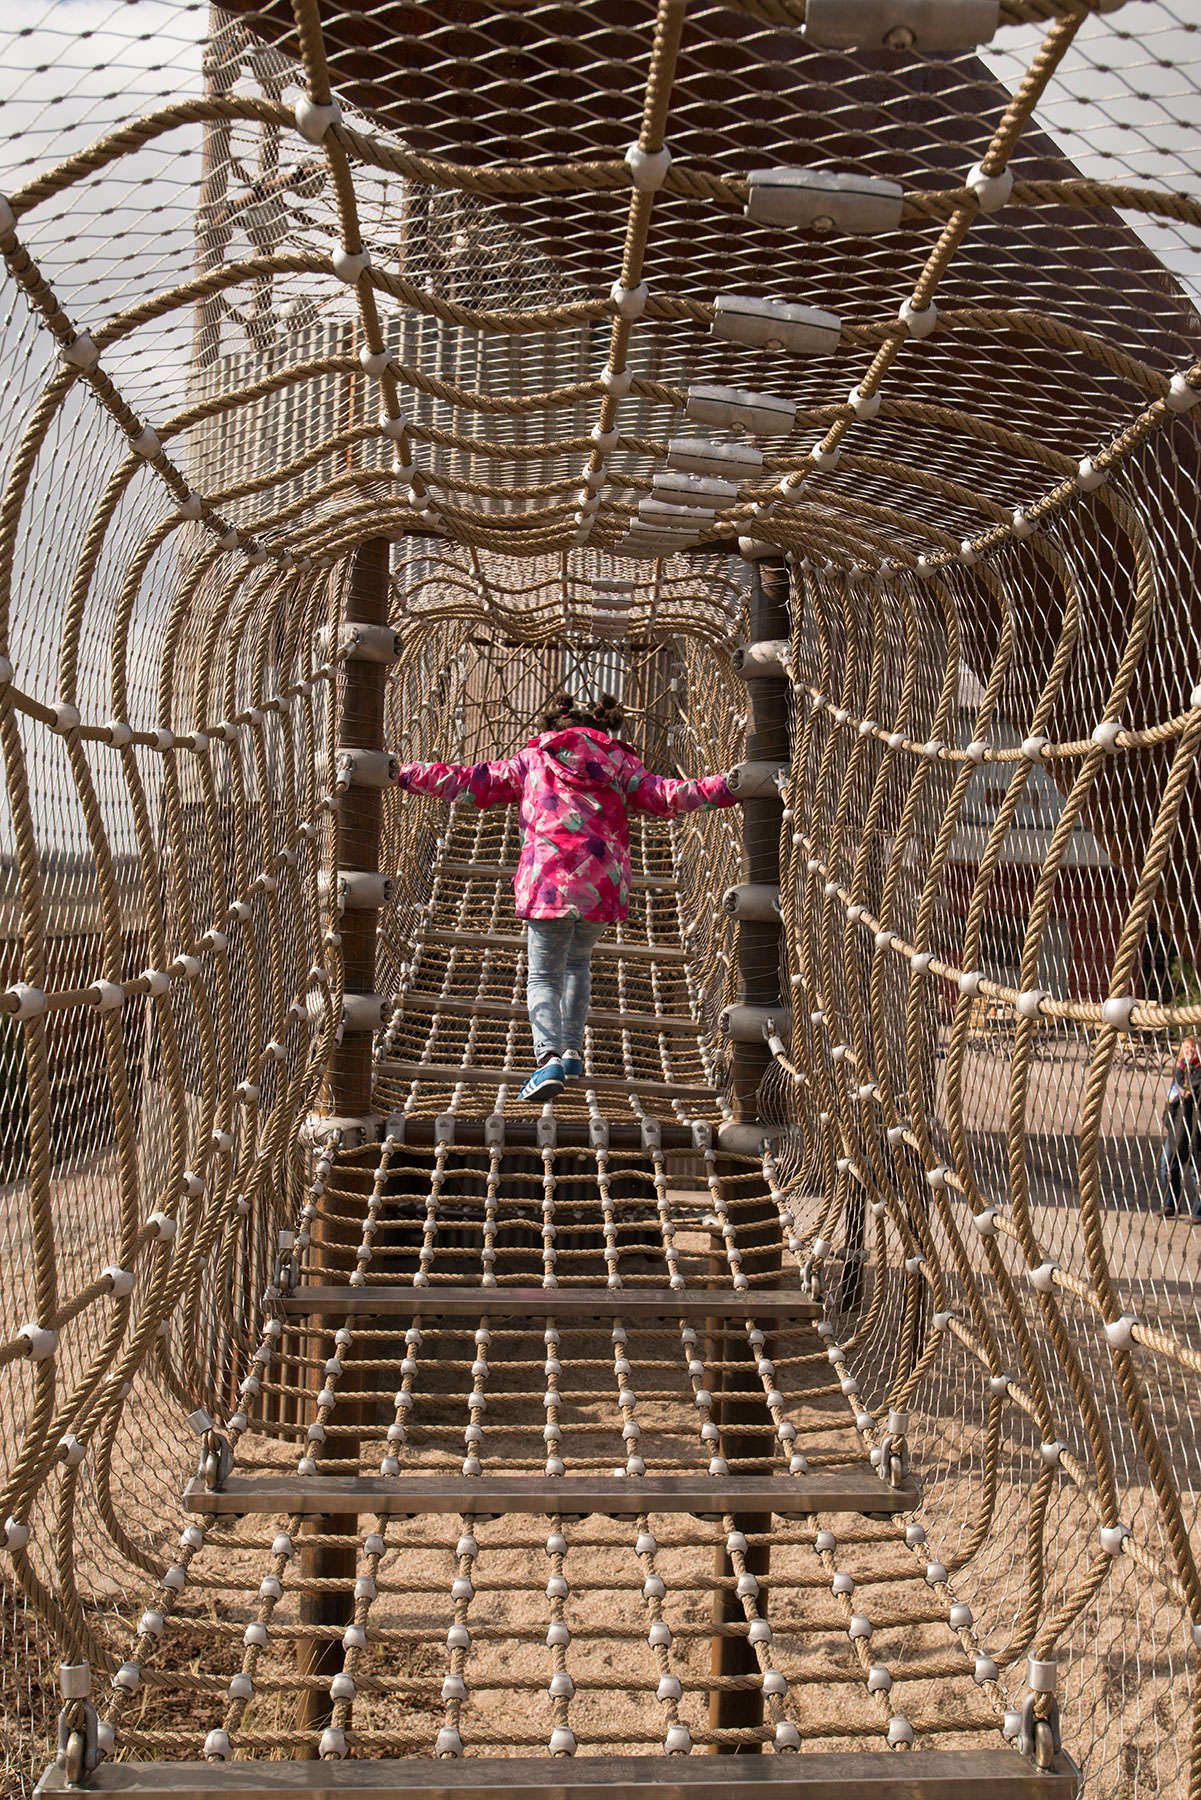 Net tunnel connects the climbing tower with a terrace